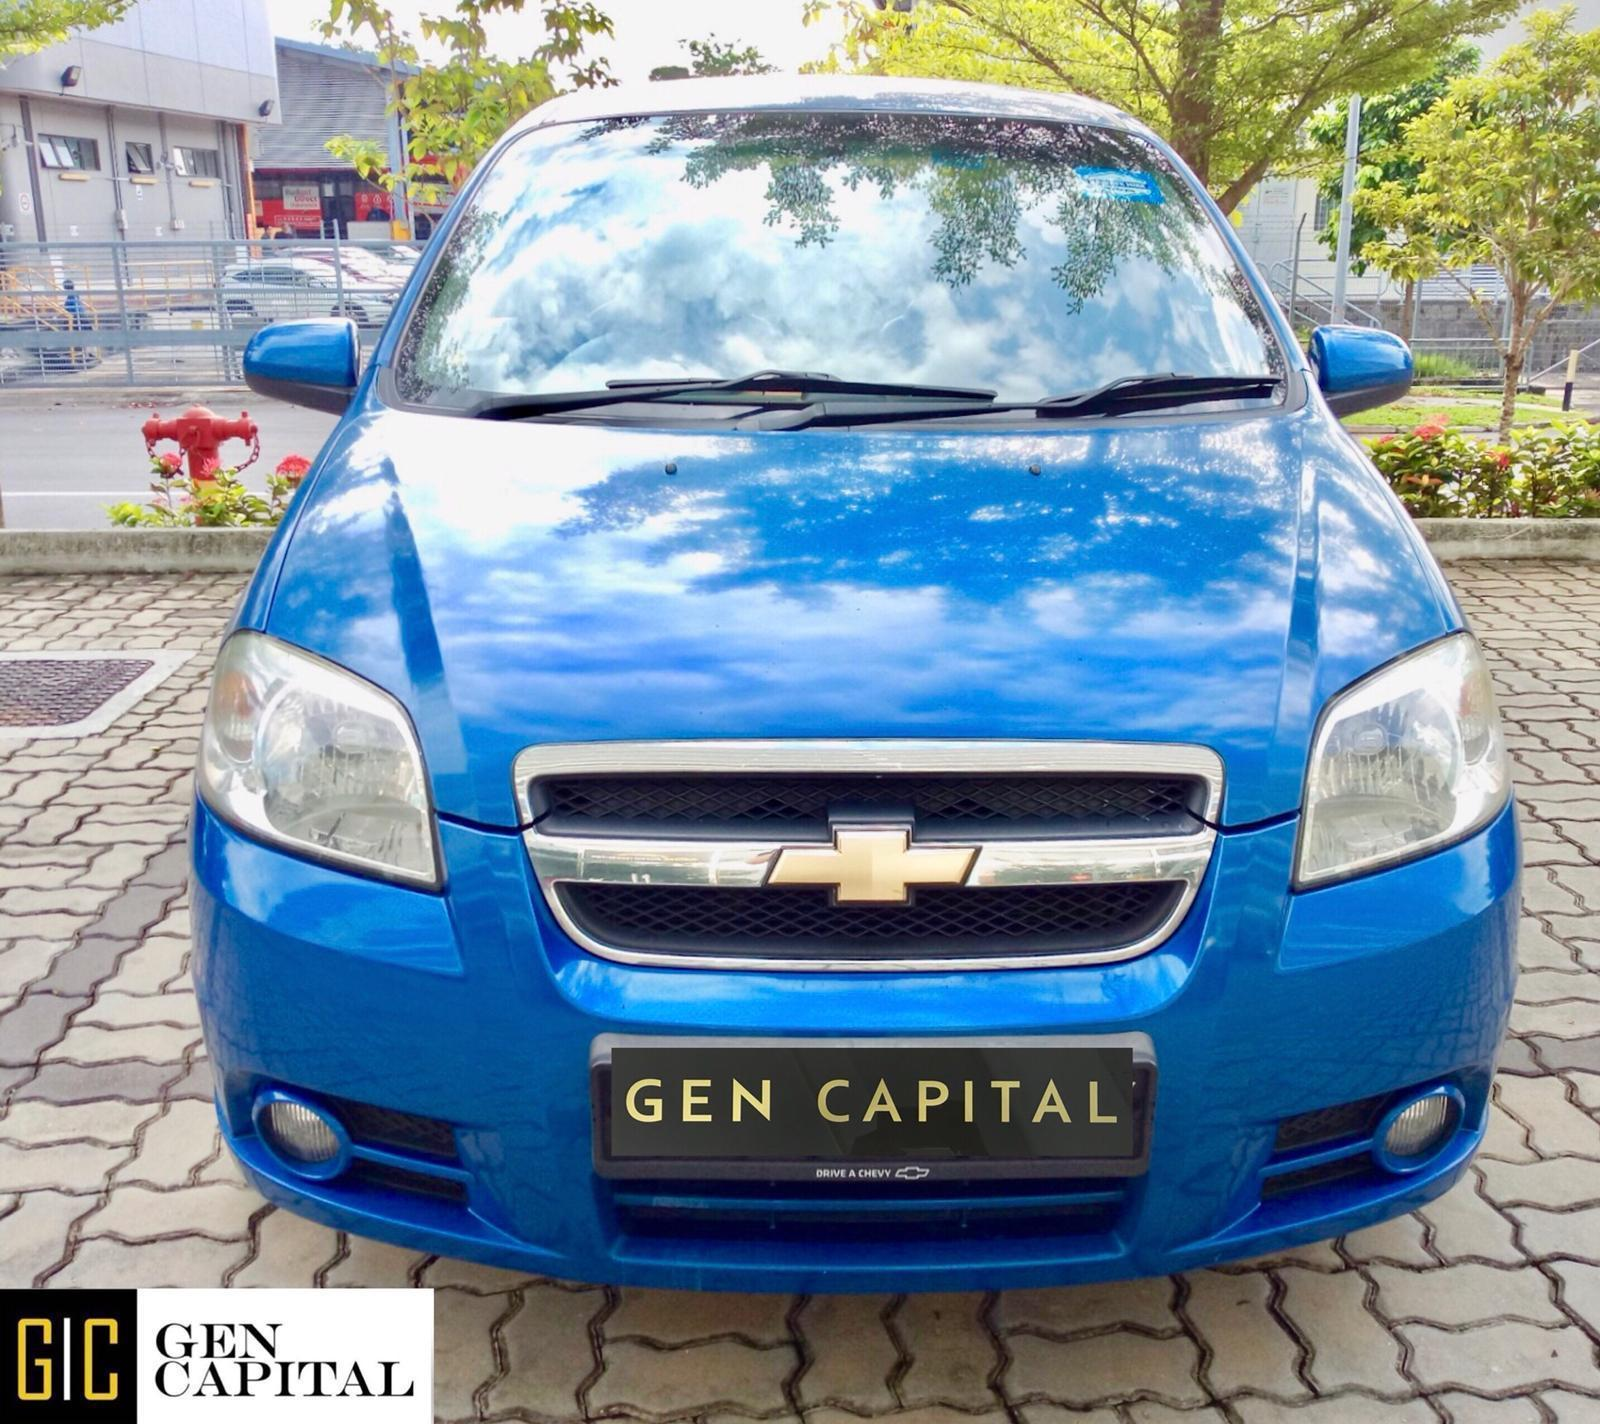 Chevrolet Aveo @ Lowest rental rates, good condition!